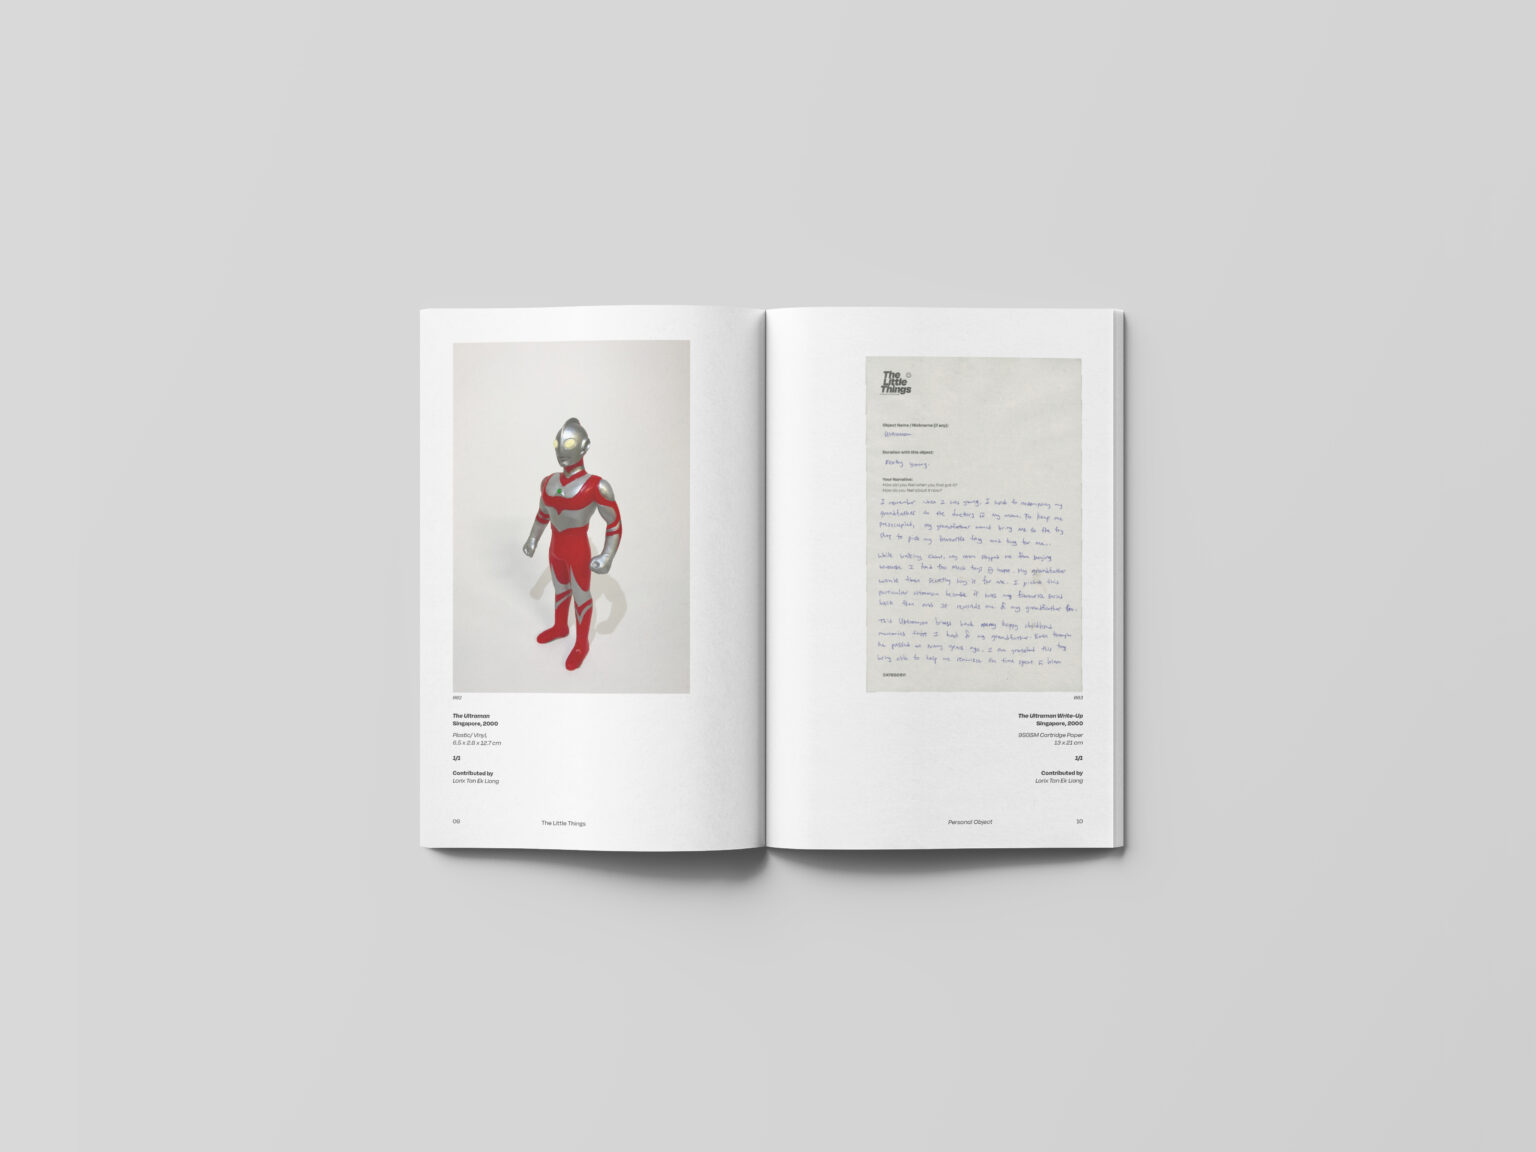 Exhibition Catalogue (Pages)